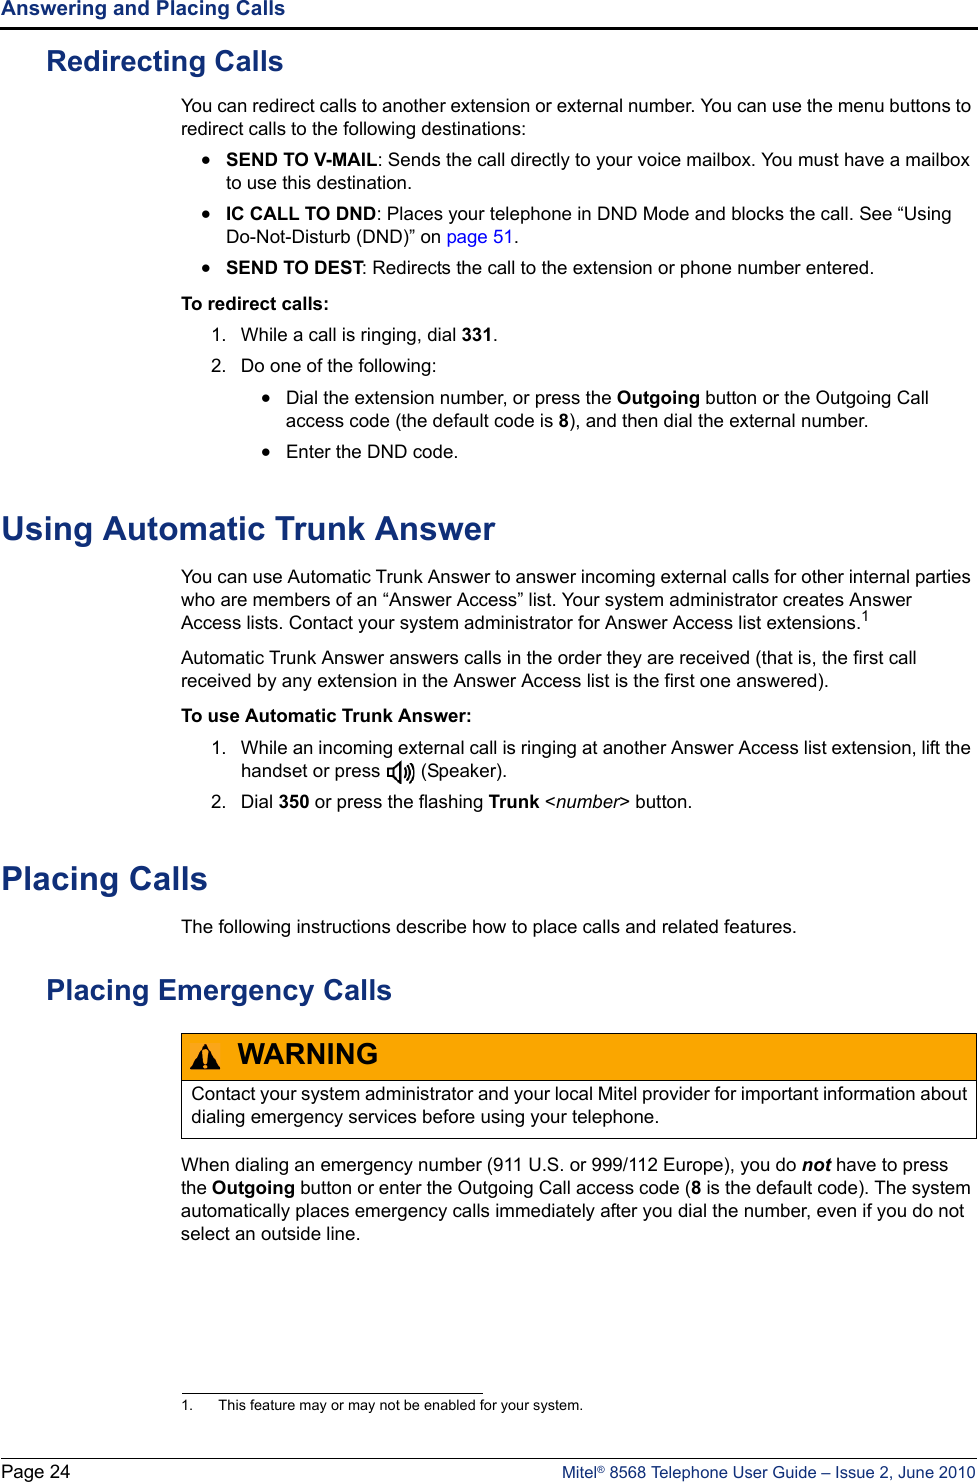 Mitel 8568 Users Manual Telephone User Guide